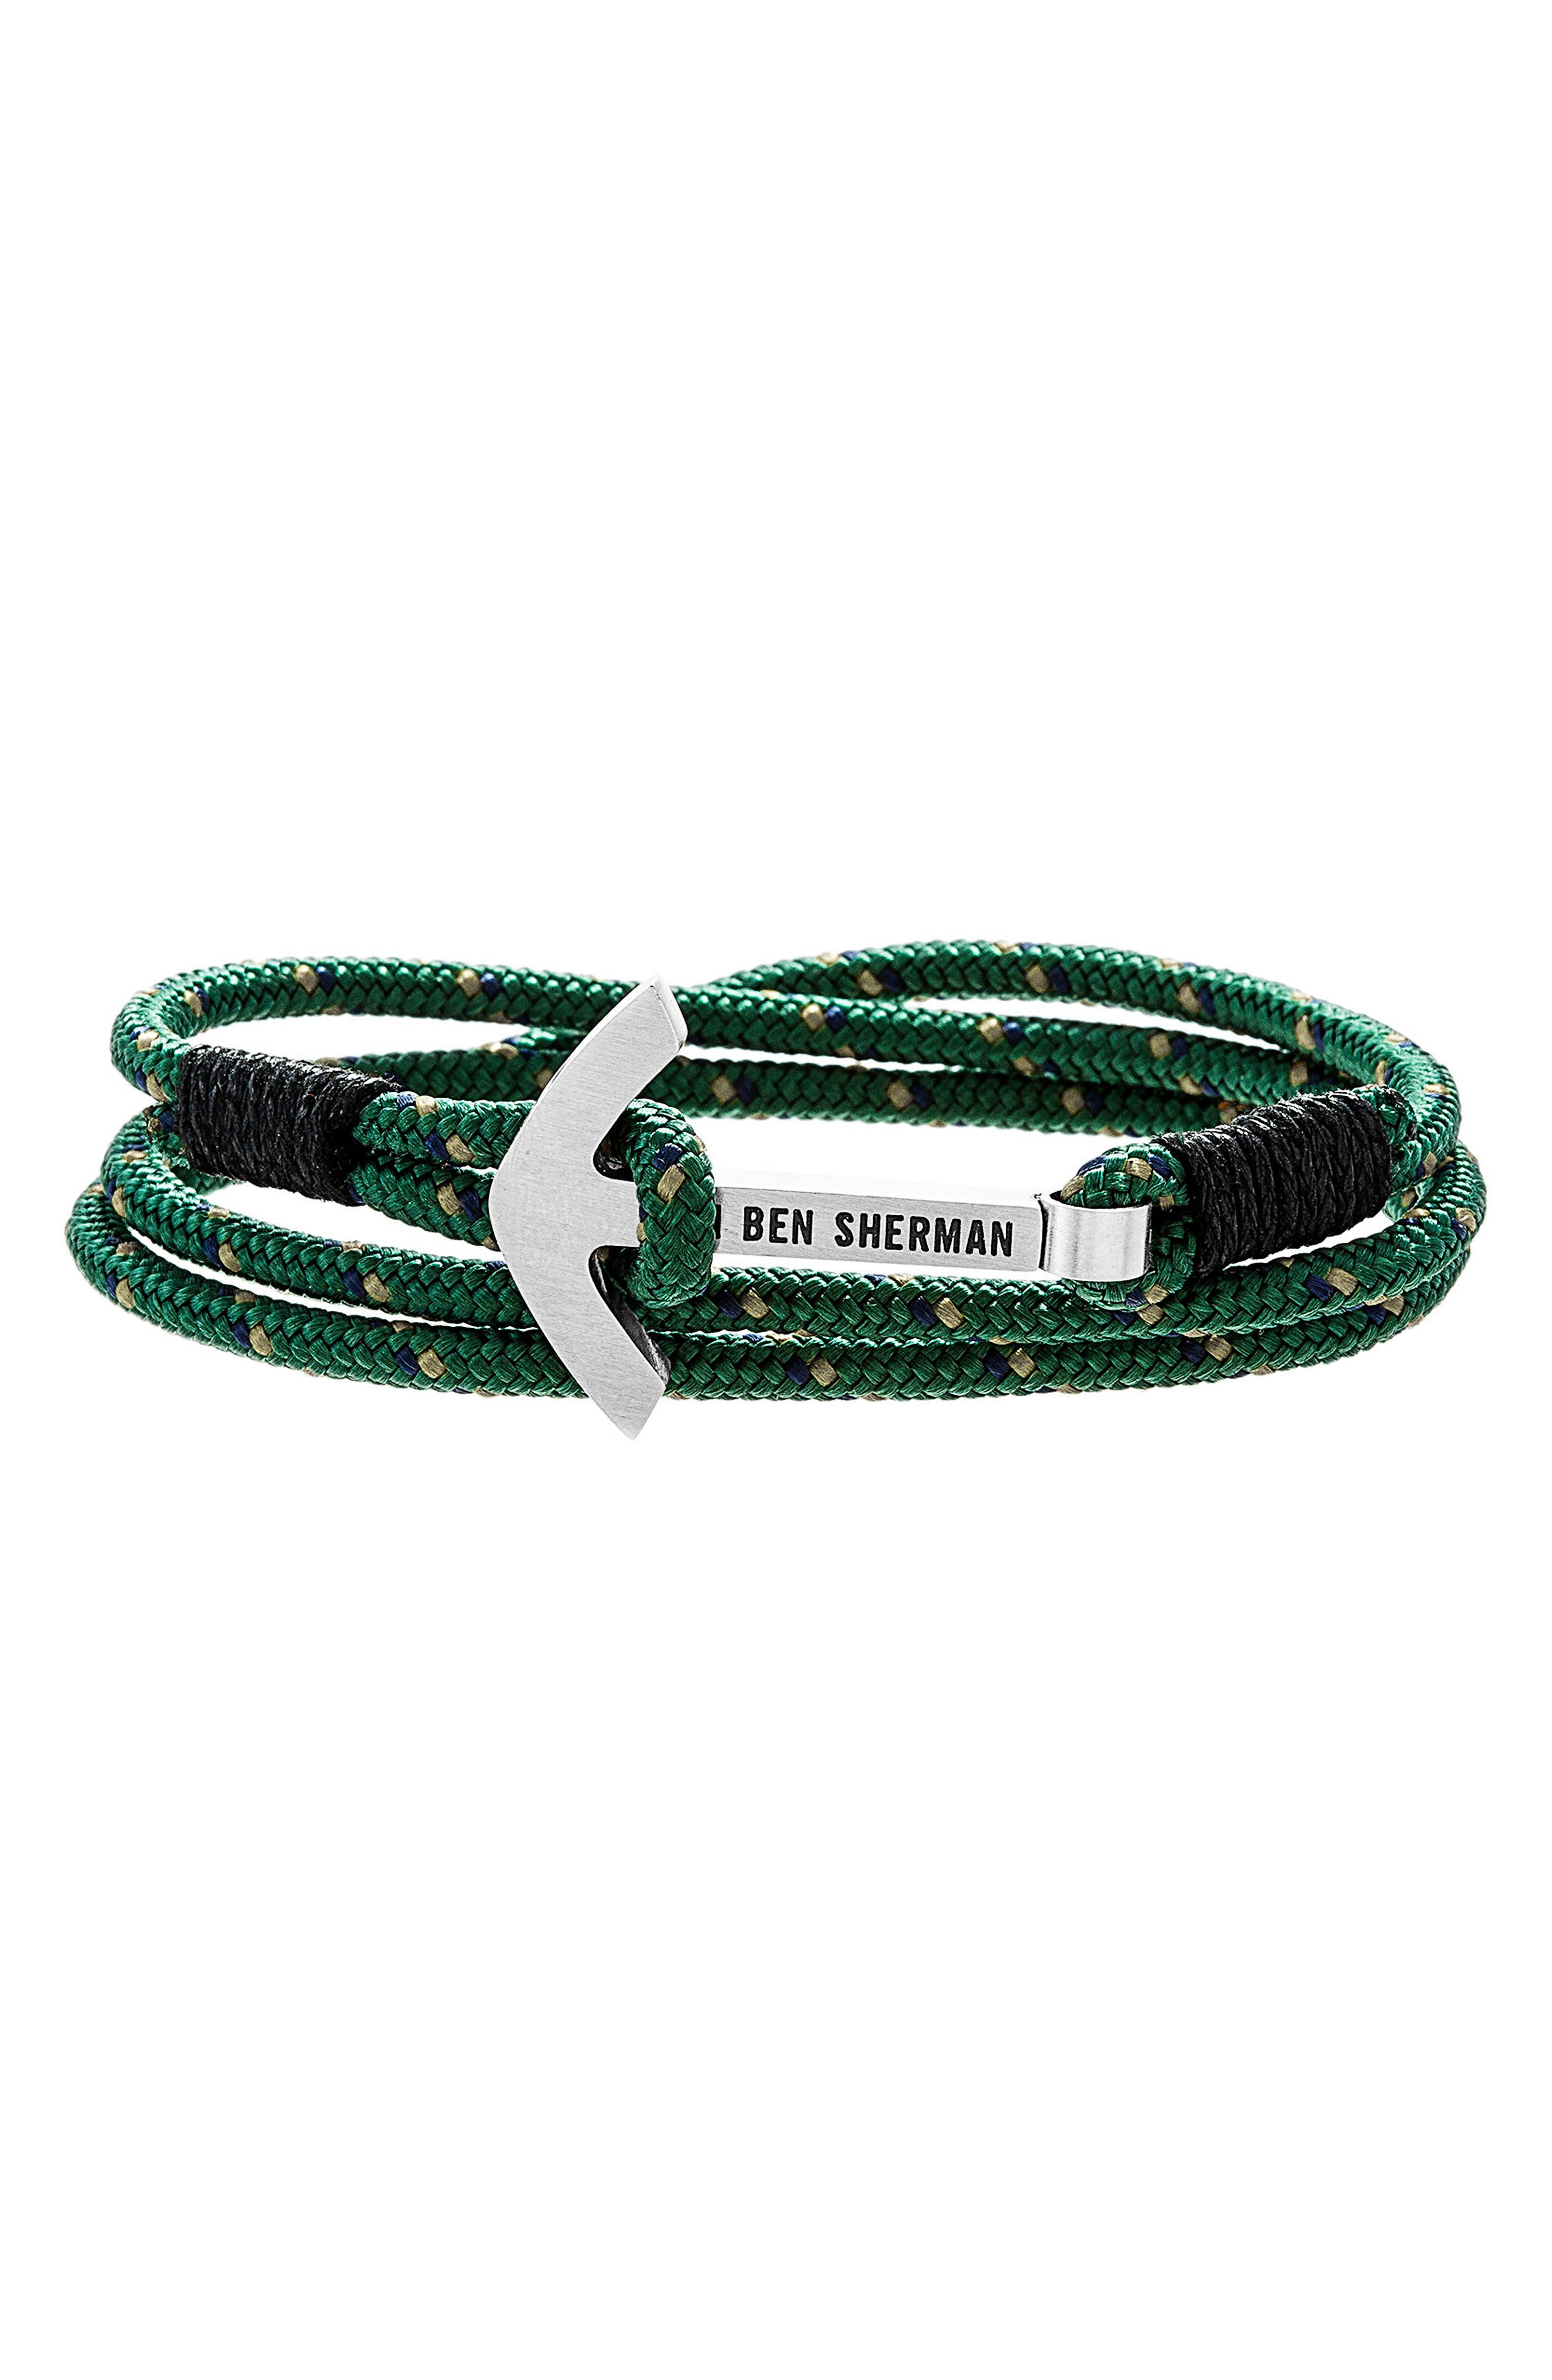 Anchor Braided Cord Bracelet,                         Main,                         color, Black/ Green/ Silver